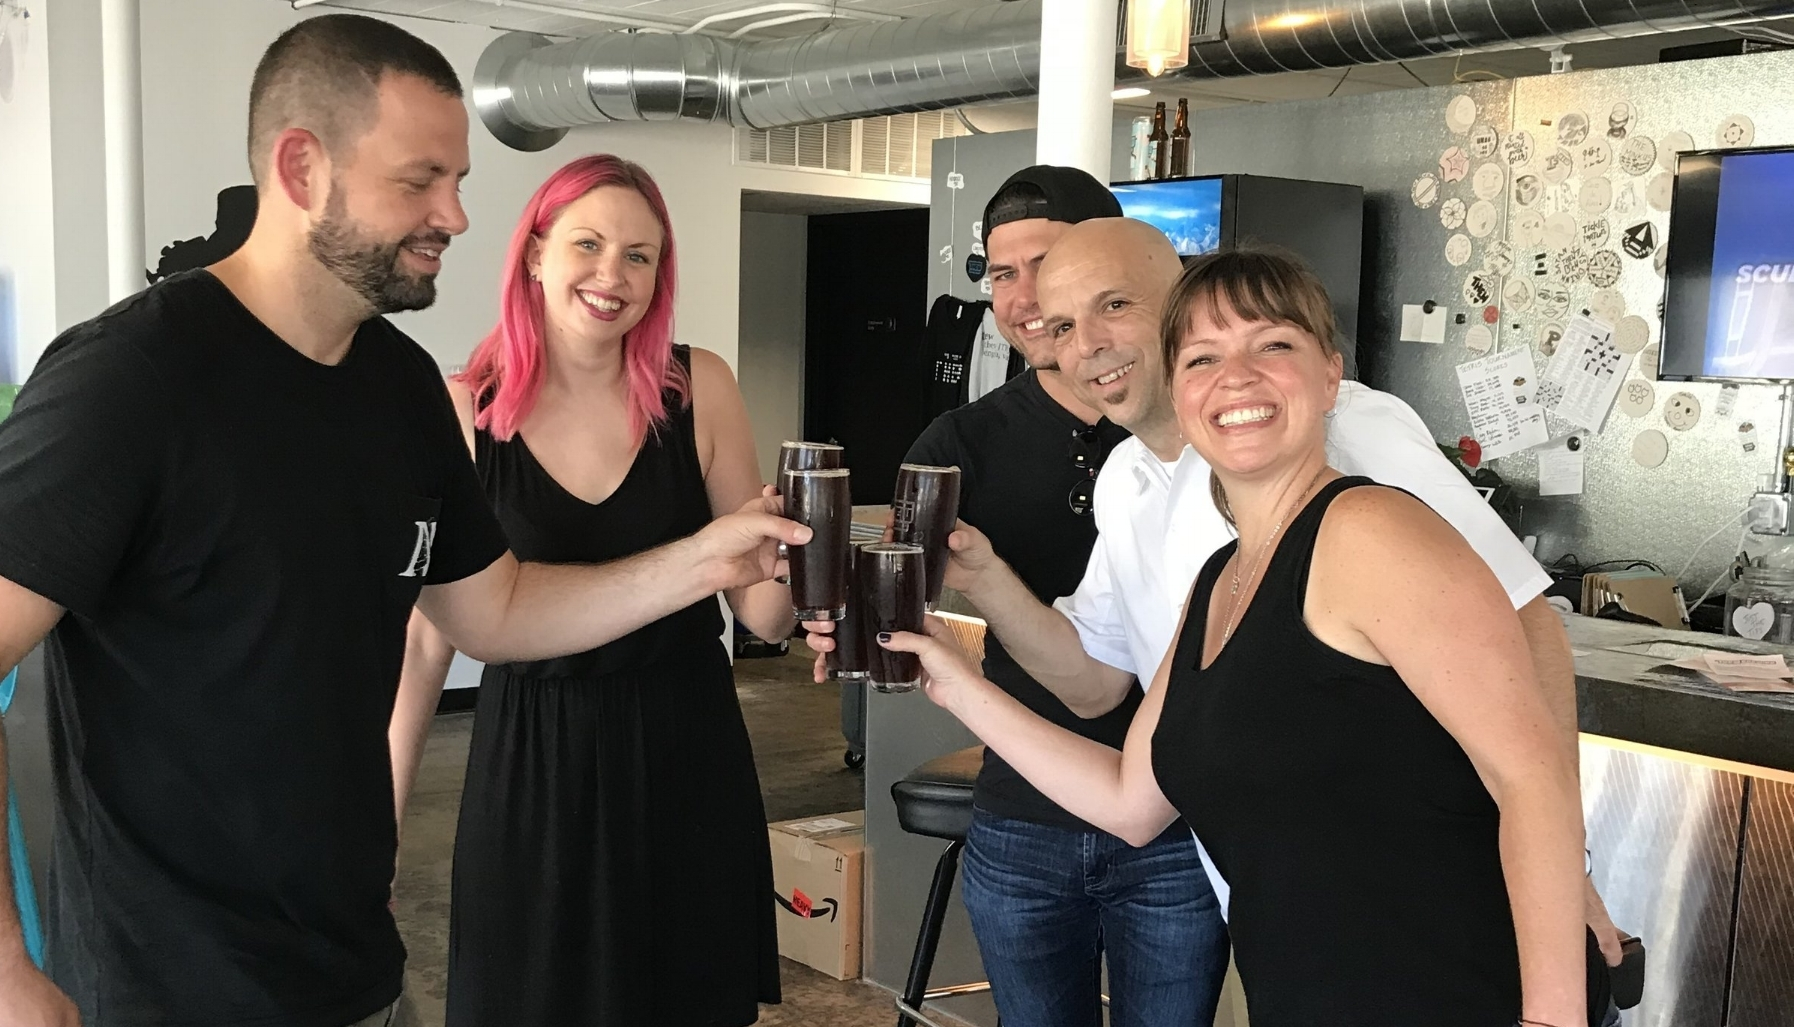 Thank you to Board member Bob Wagner of Need Pizza and Haley of Thew Brewery collaborating on the 2018 Scrappy Extra Pale Ale with proceeds benefiting the PR Foundation. First pints enjoyed by Bob, Haley, Ryan, Robert and Katie.